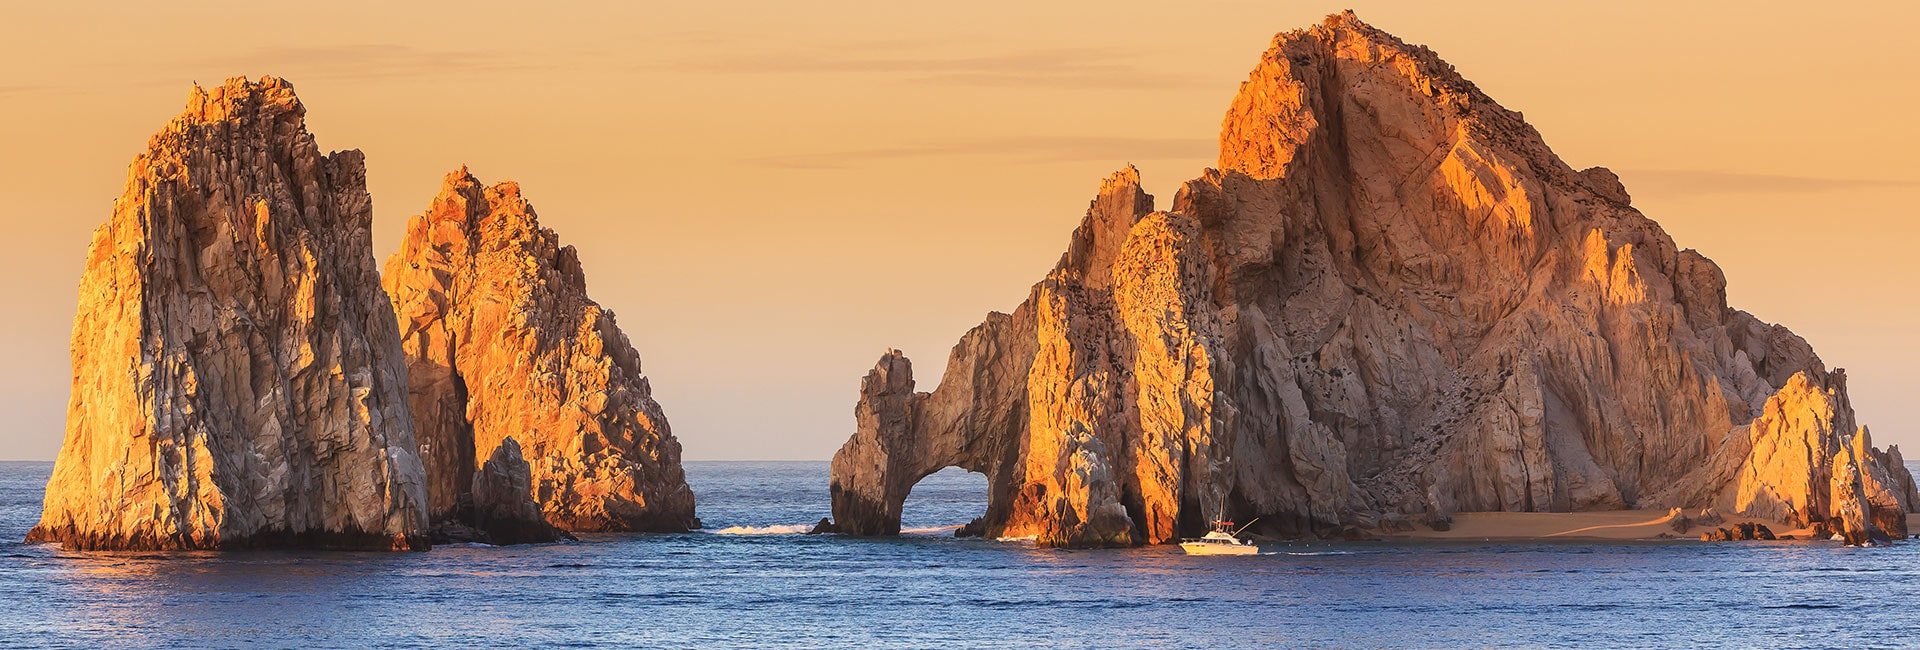 Cabo San Lucas Mexico Travel Restrictions